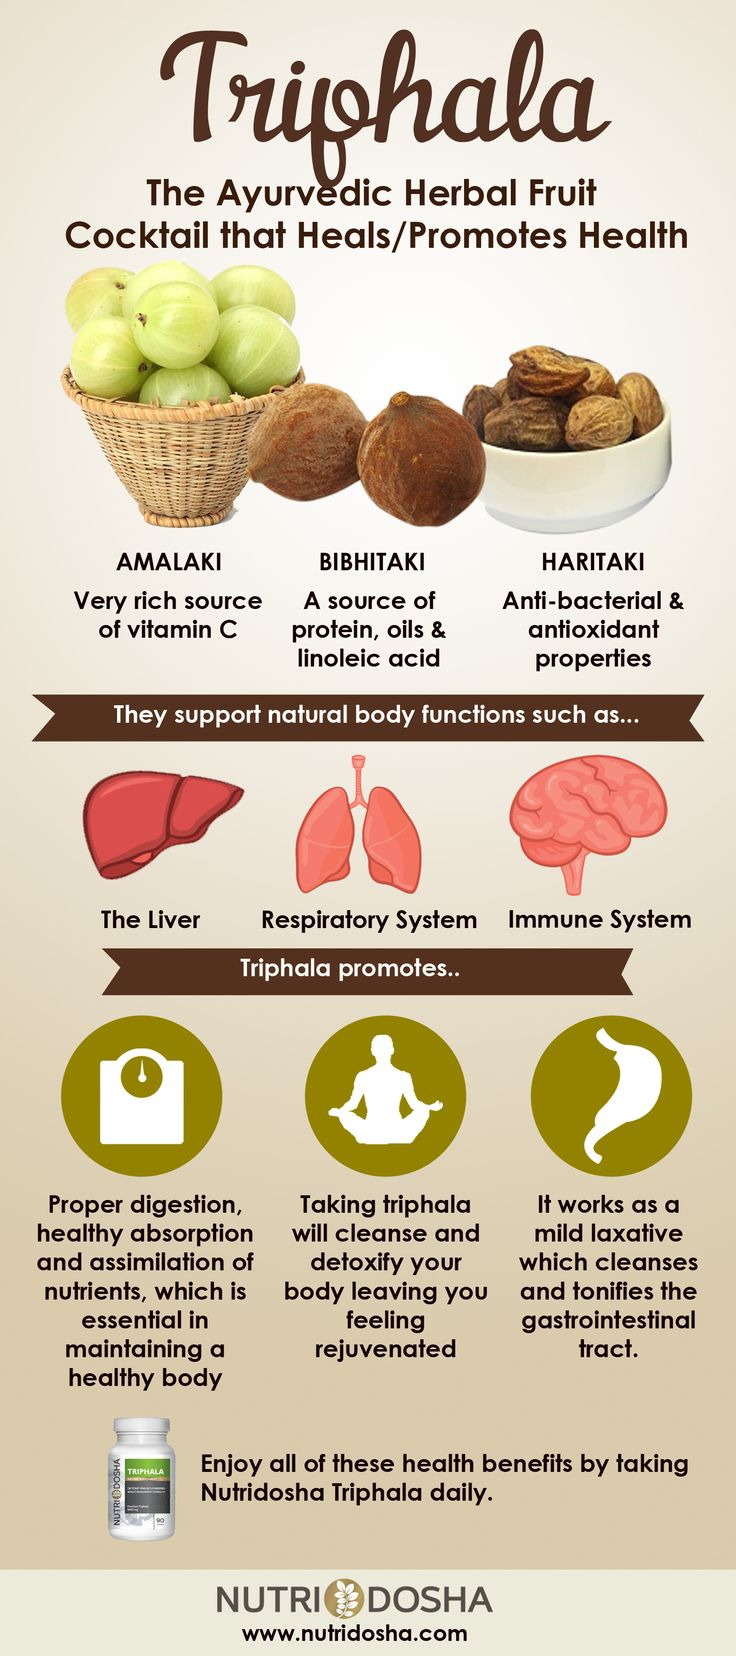 Benefits of Triphala Infographic.  Bibhitaki, Amalaki and Haritaki.  Powerful antioxidant.